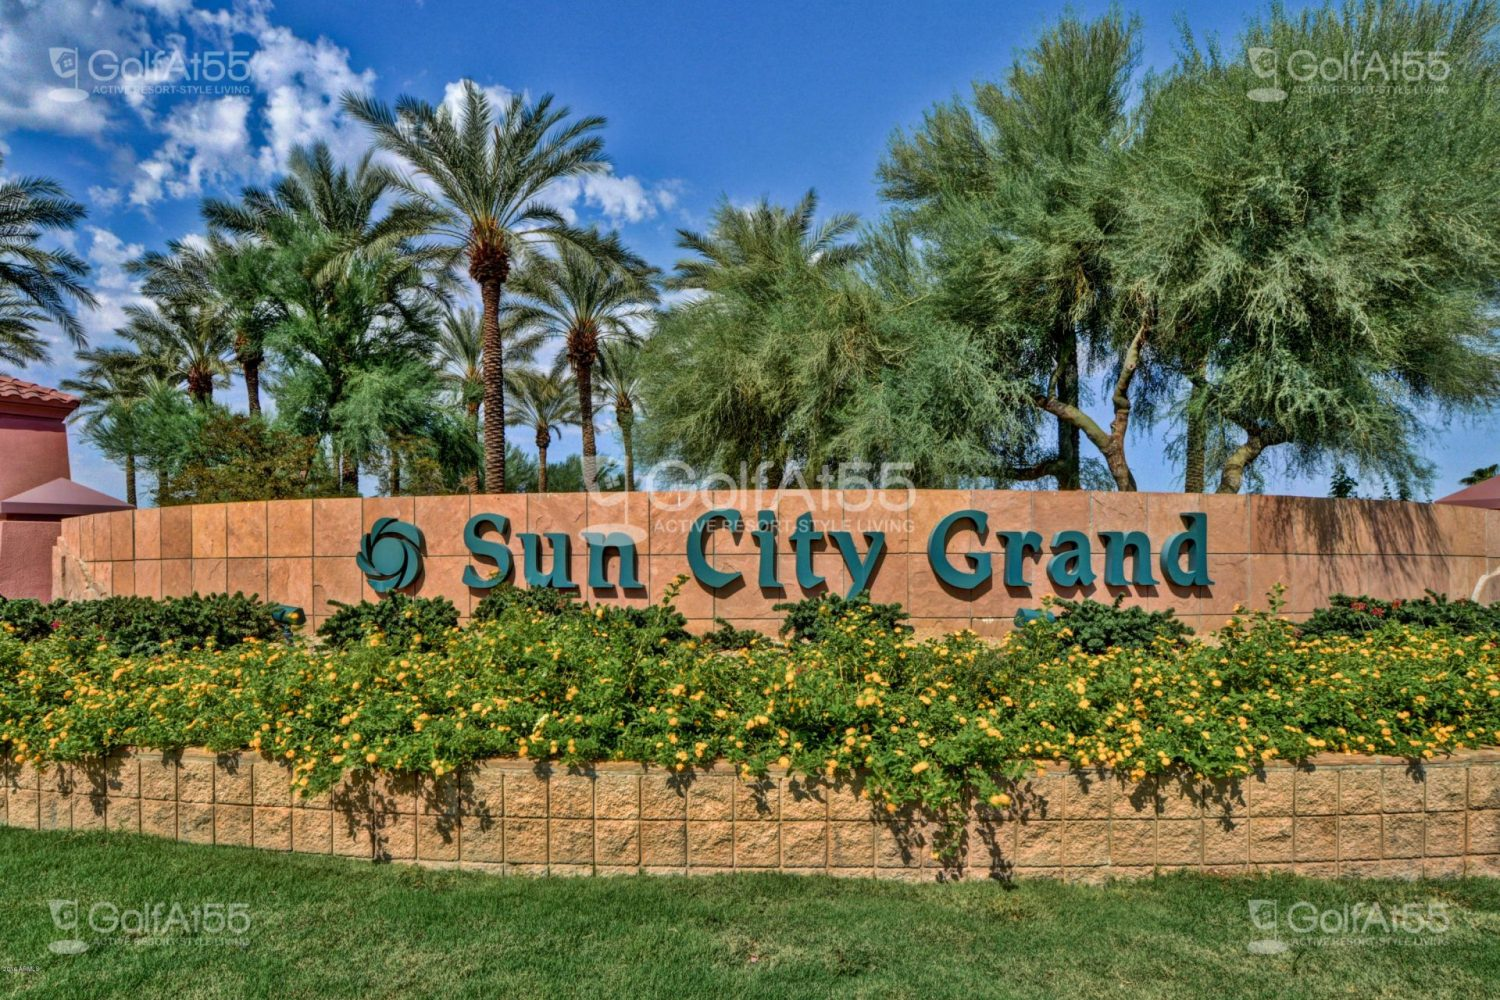 dating in sun city az Sun city west dating and personals personal ads for sun city west, az are a great way to find a life partner, movie date, or a quick hookup personals are for people local to sun city west, az and are for ages 18+ of either sex.